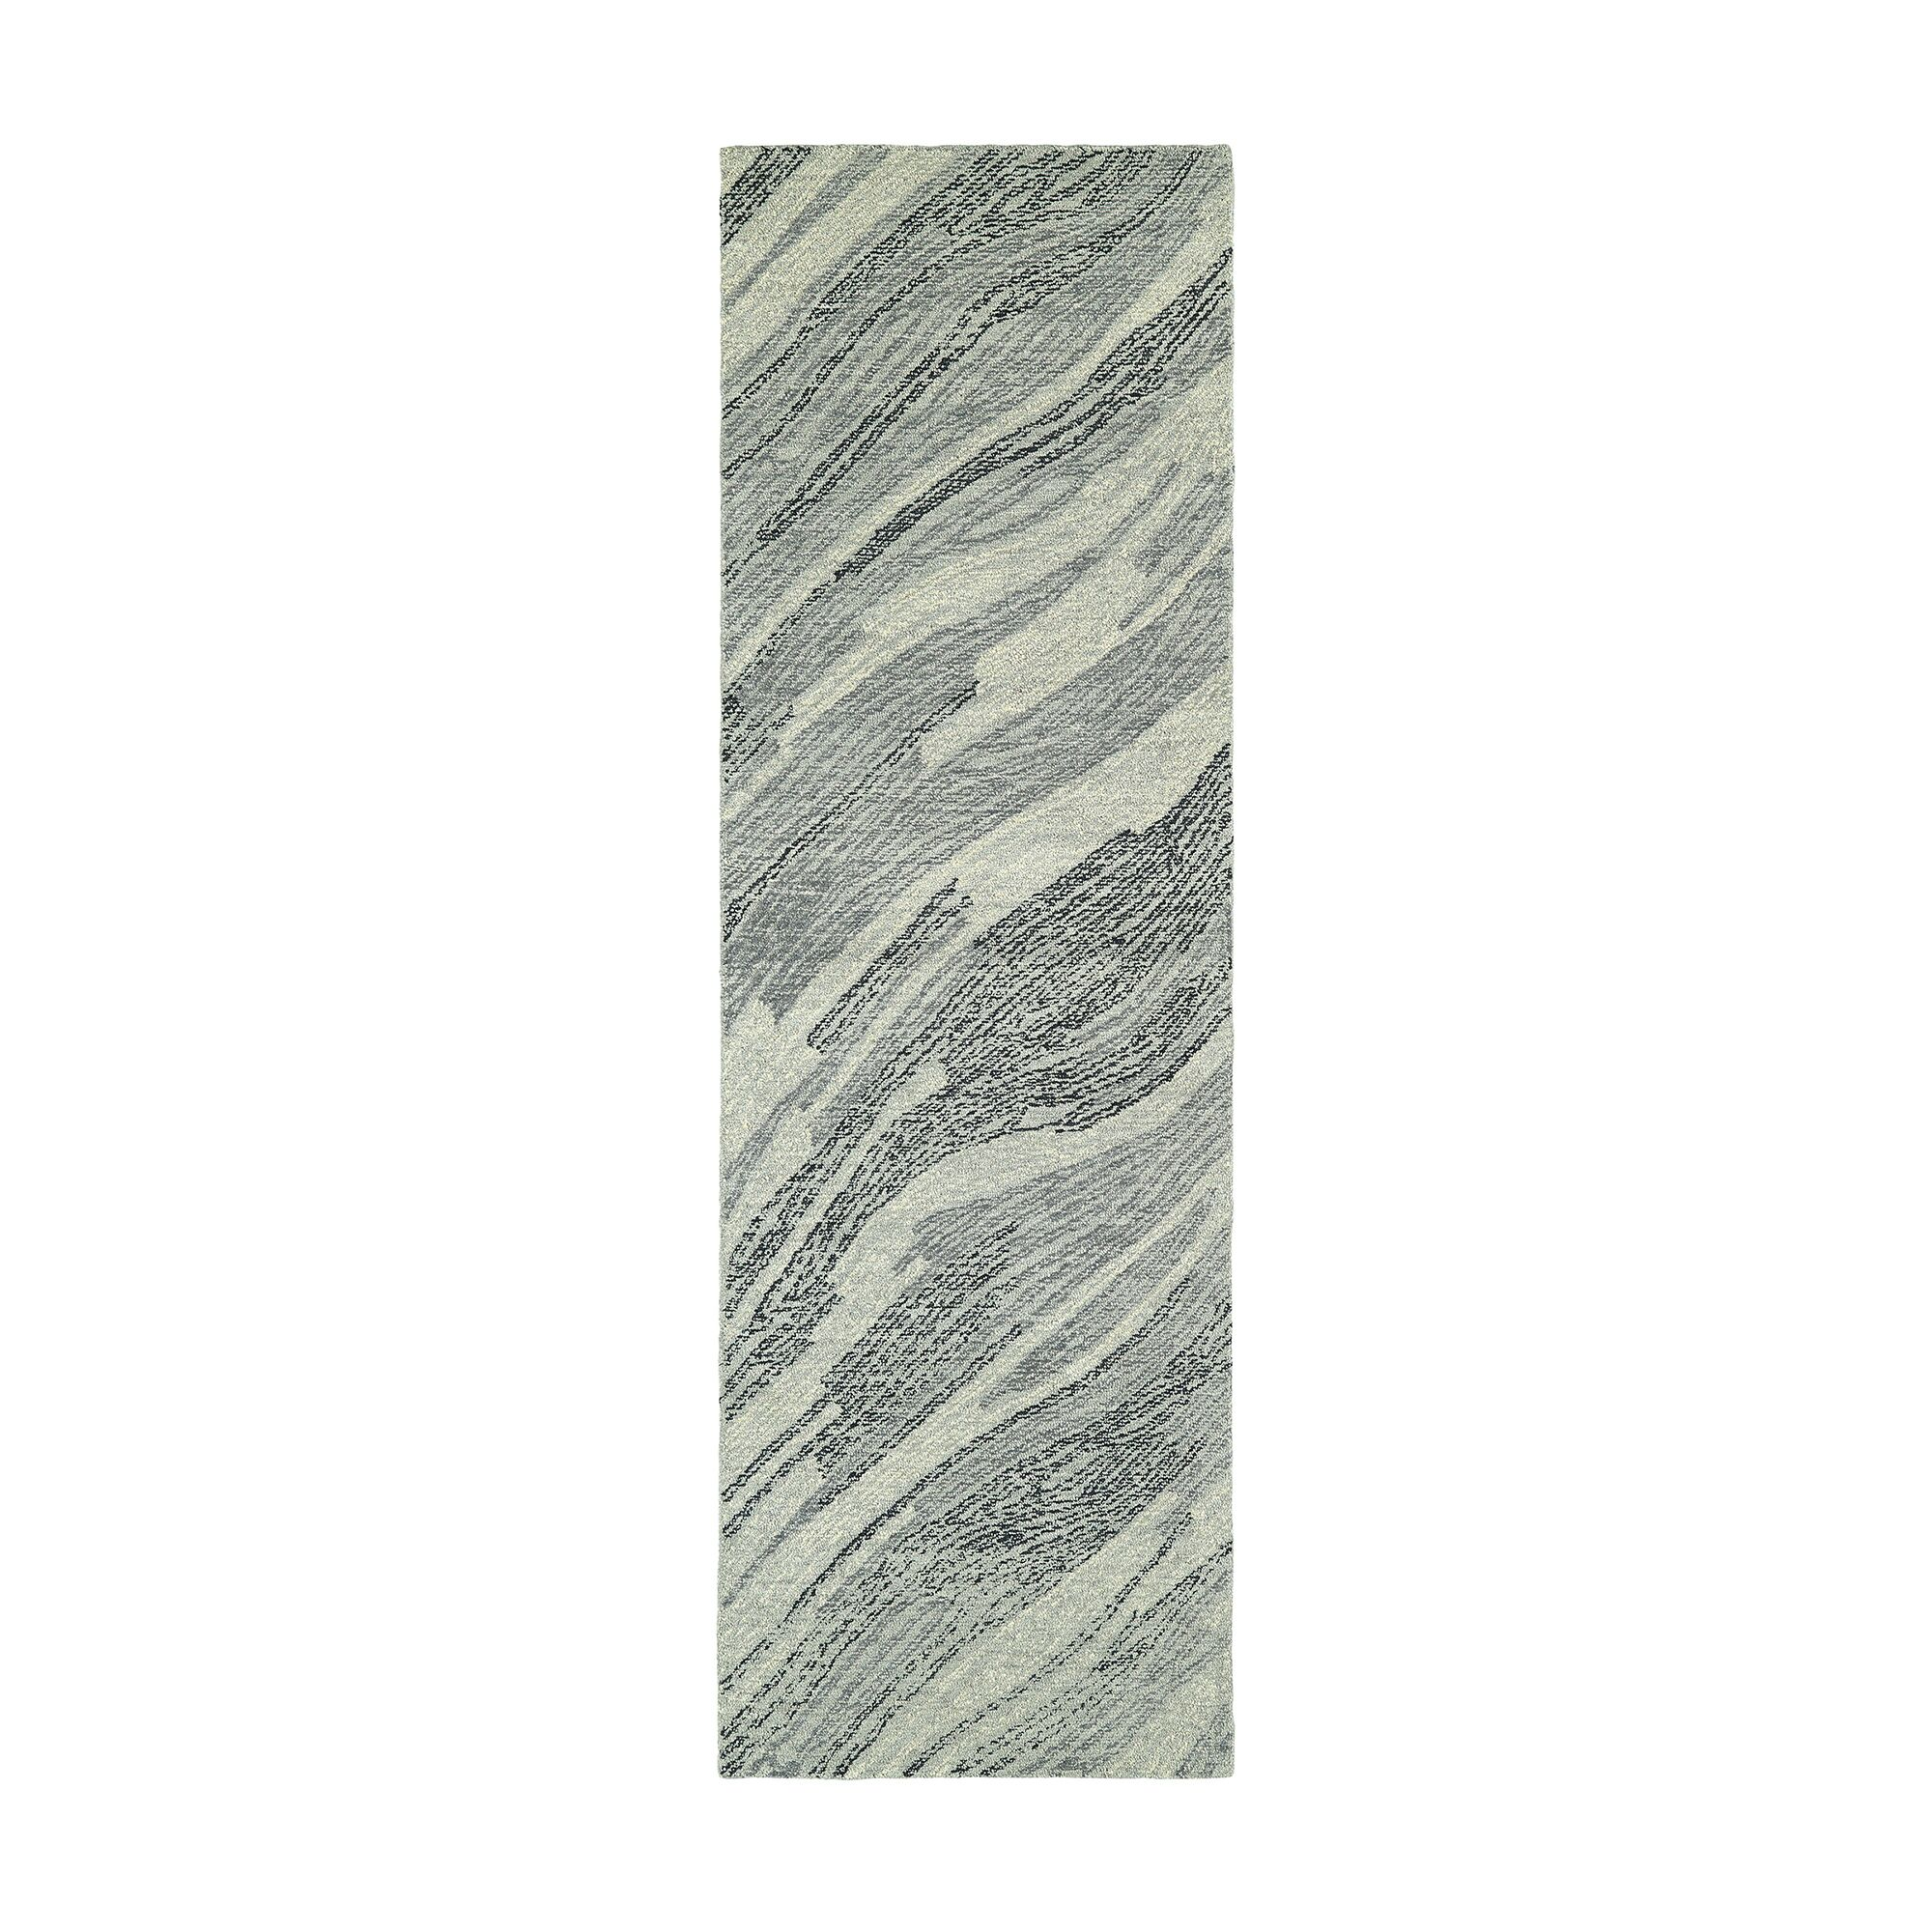 Stockman Hand-Tufted Wool Gray/Ivory Area Rug Rug Size: Runner 2'6